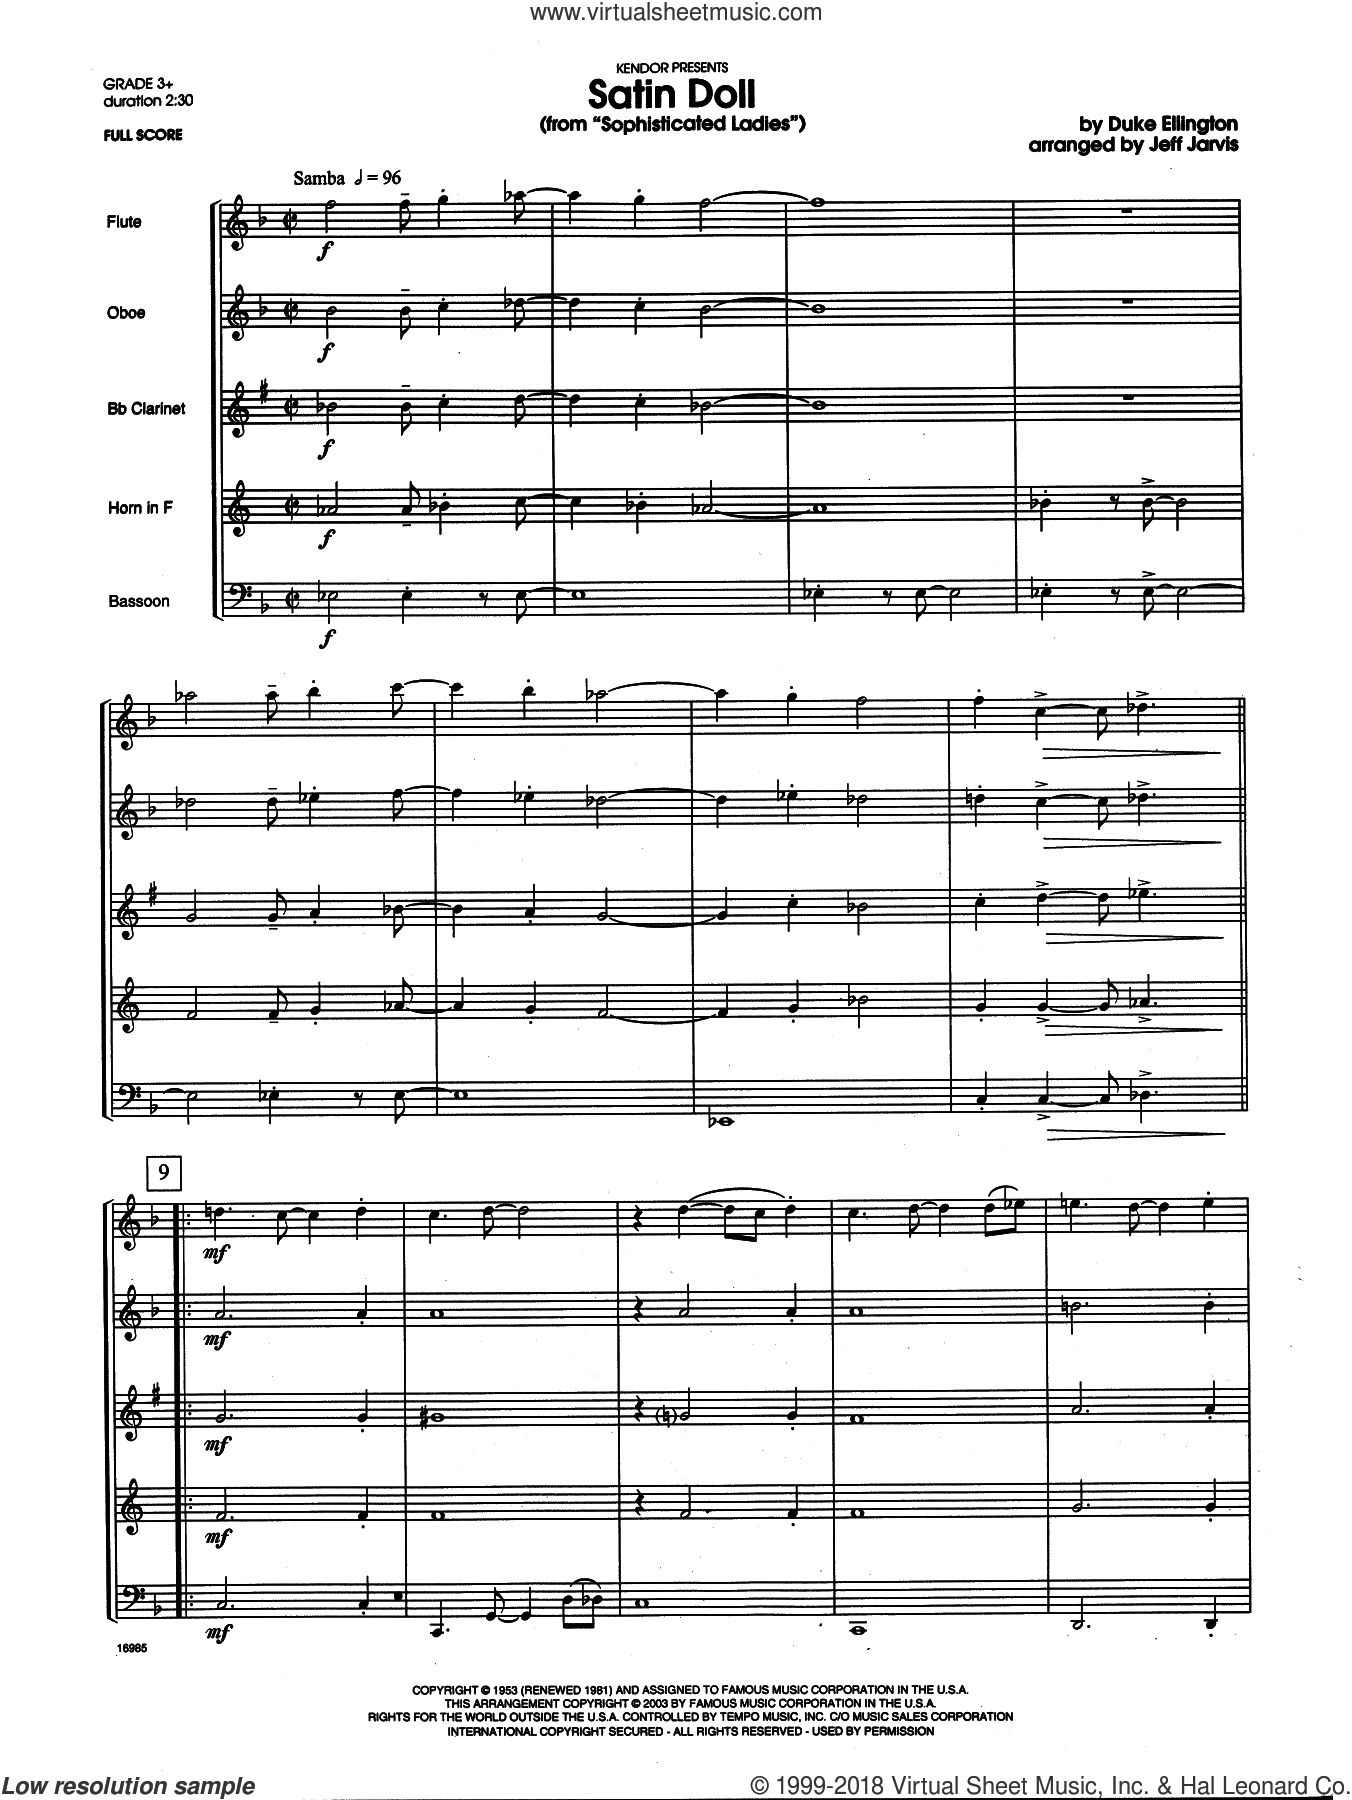 Satin Doll (COMPLETE) sheet music for wind quintet by Duke Ellington and Jeff Jarvis, intermediate skill level